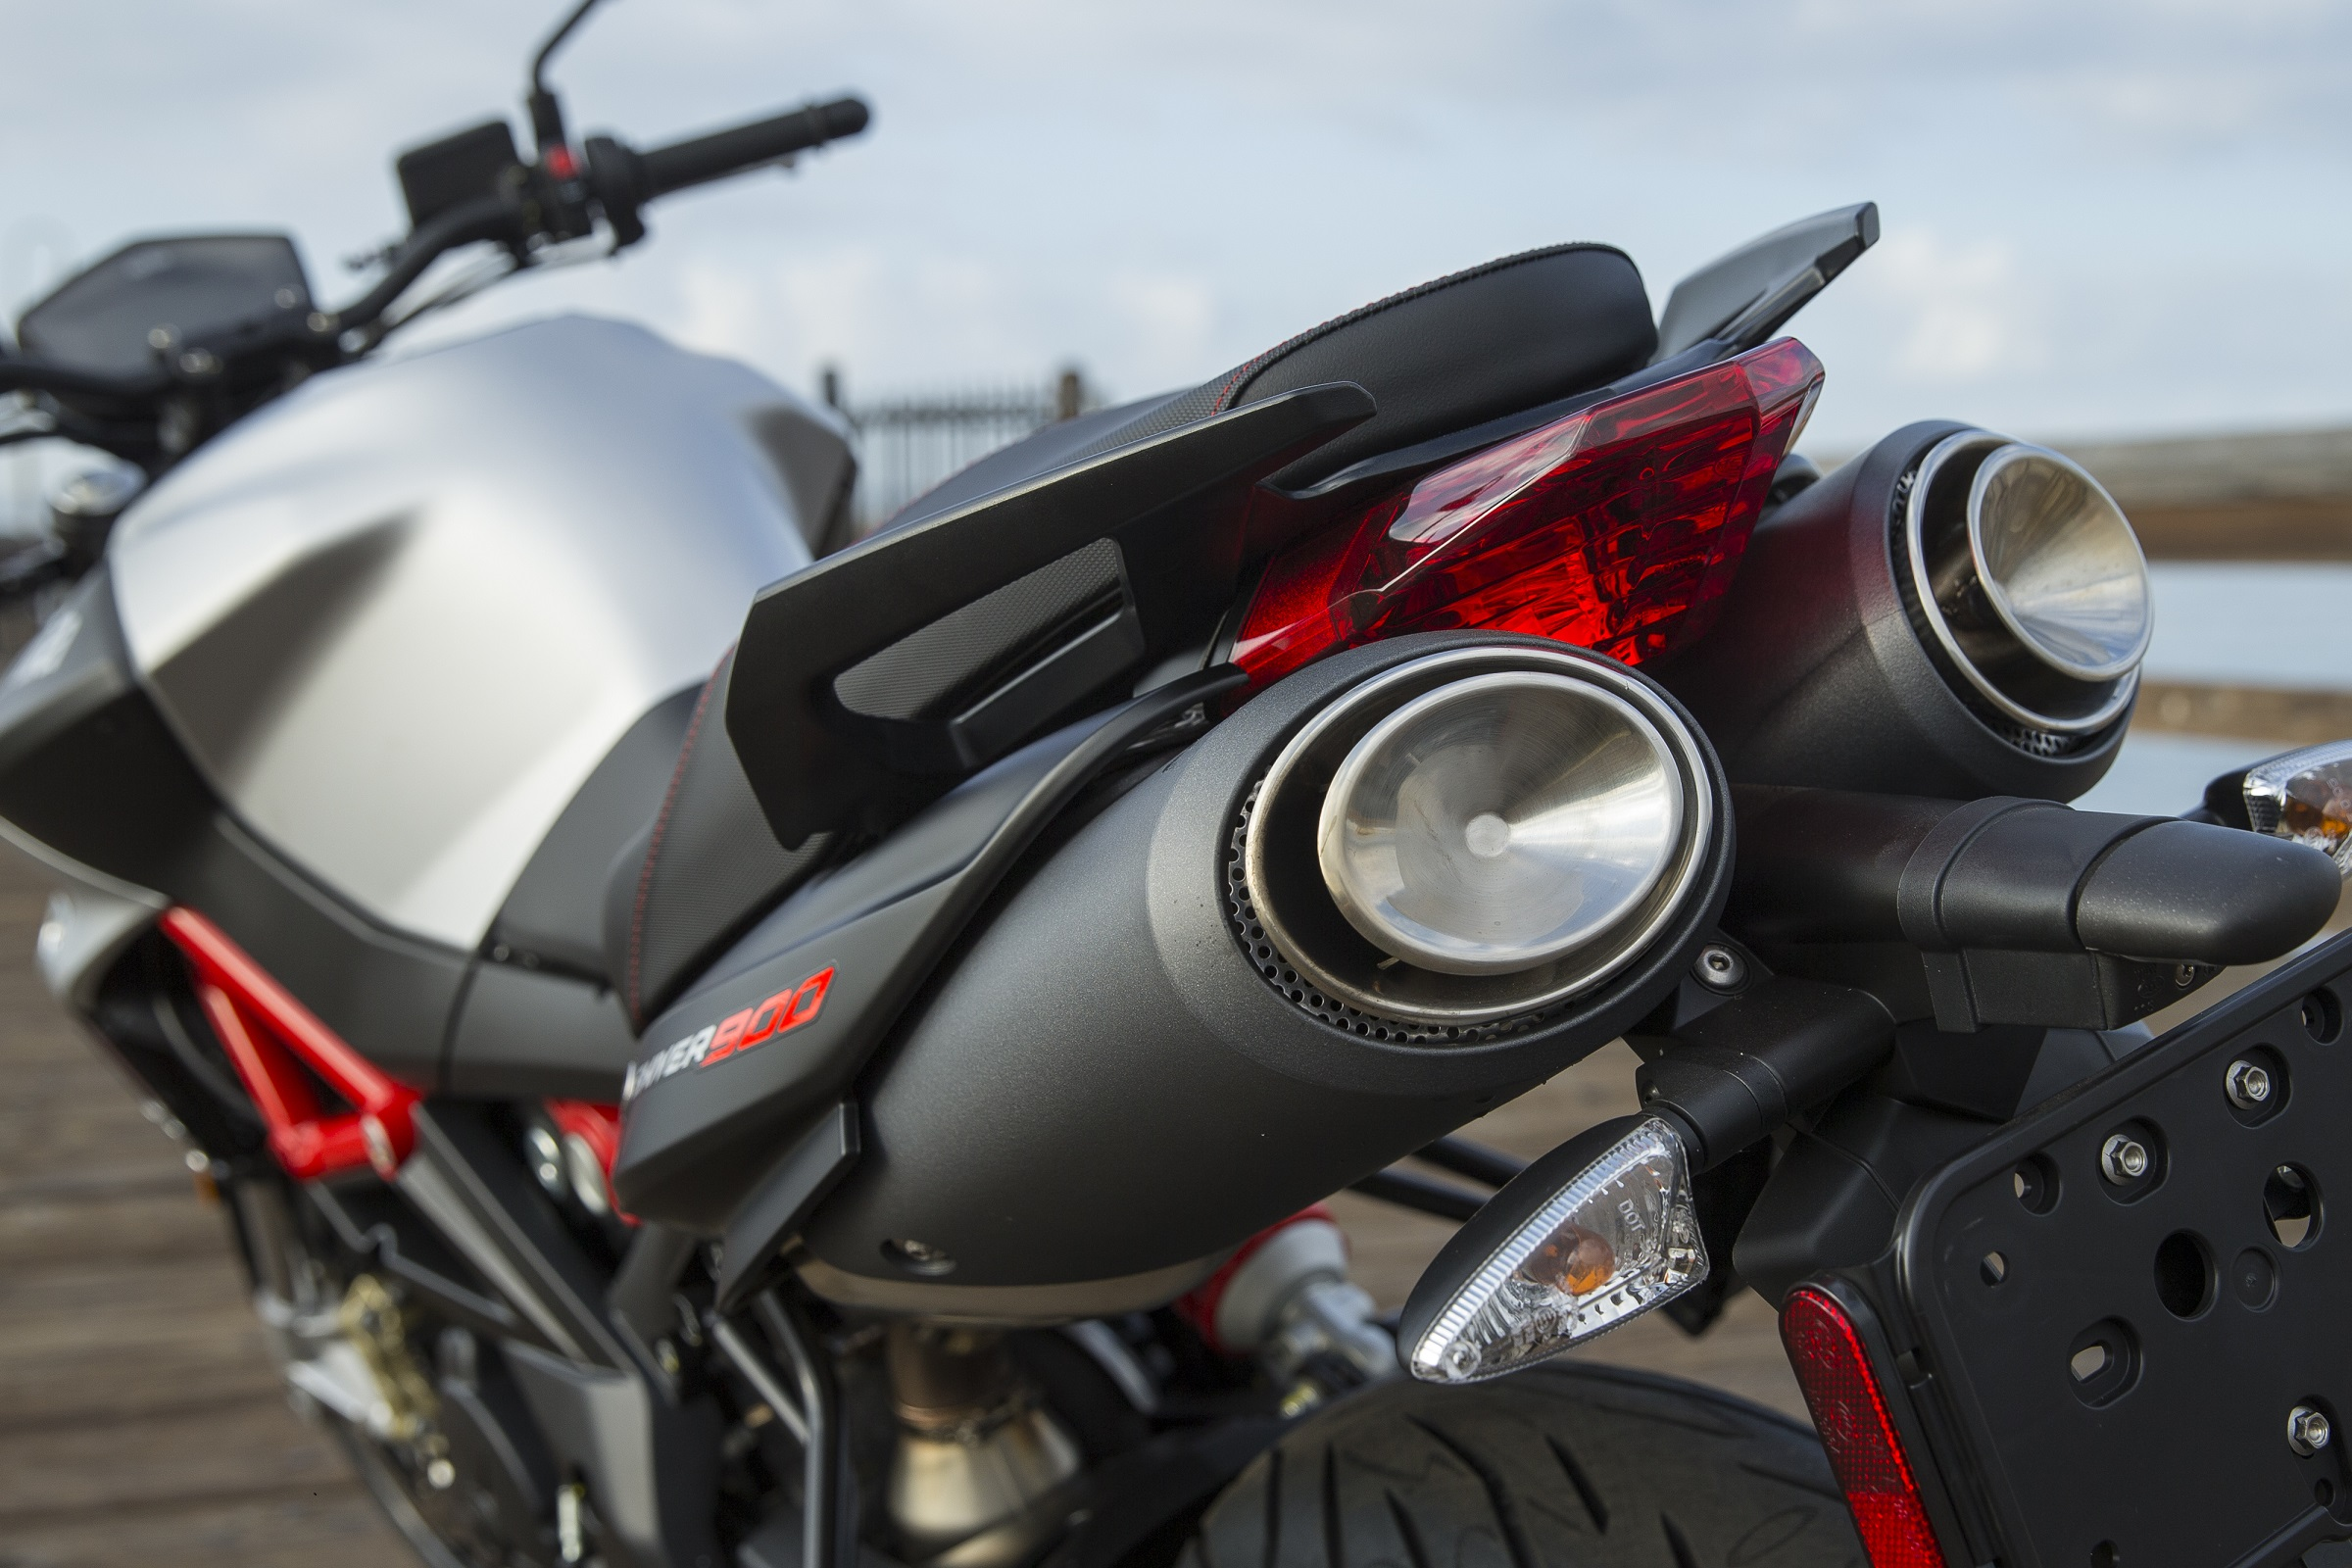 2018 Aprilia Shiver 900 first ride review - RevZilla